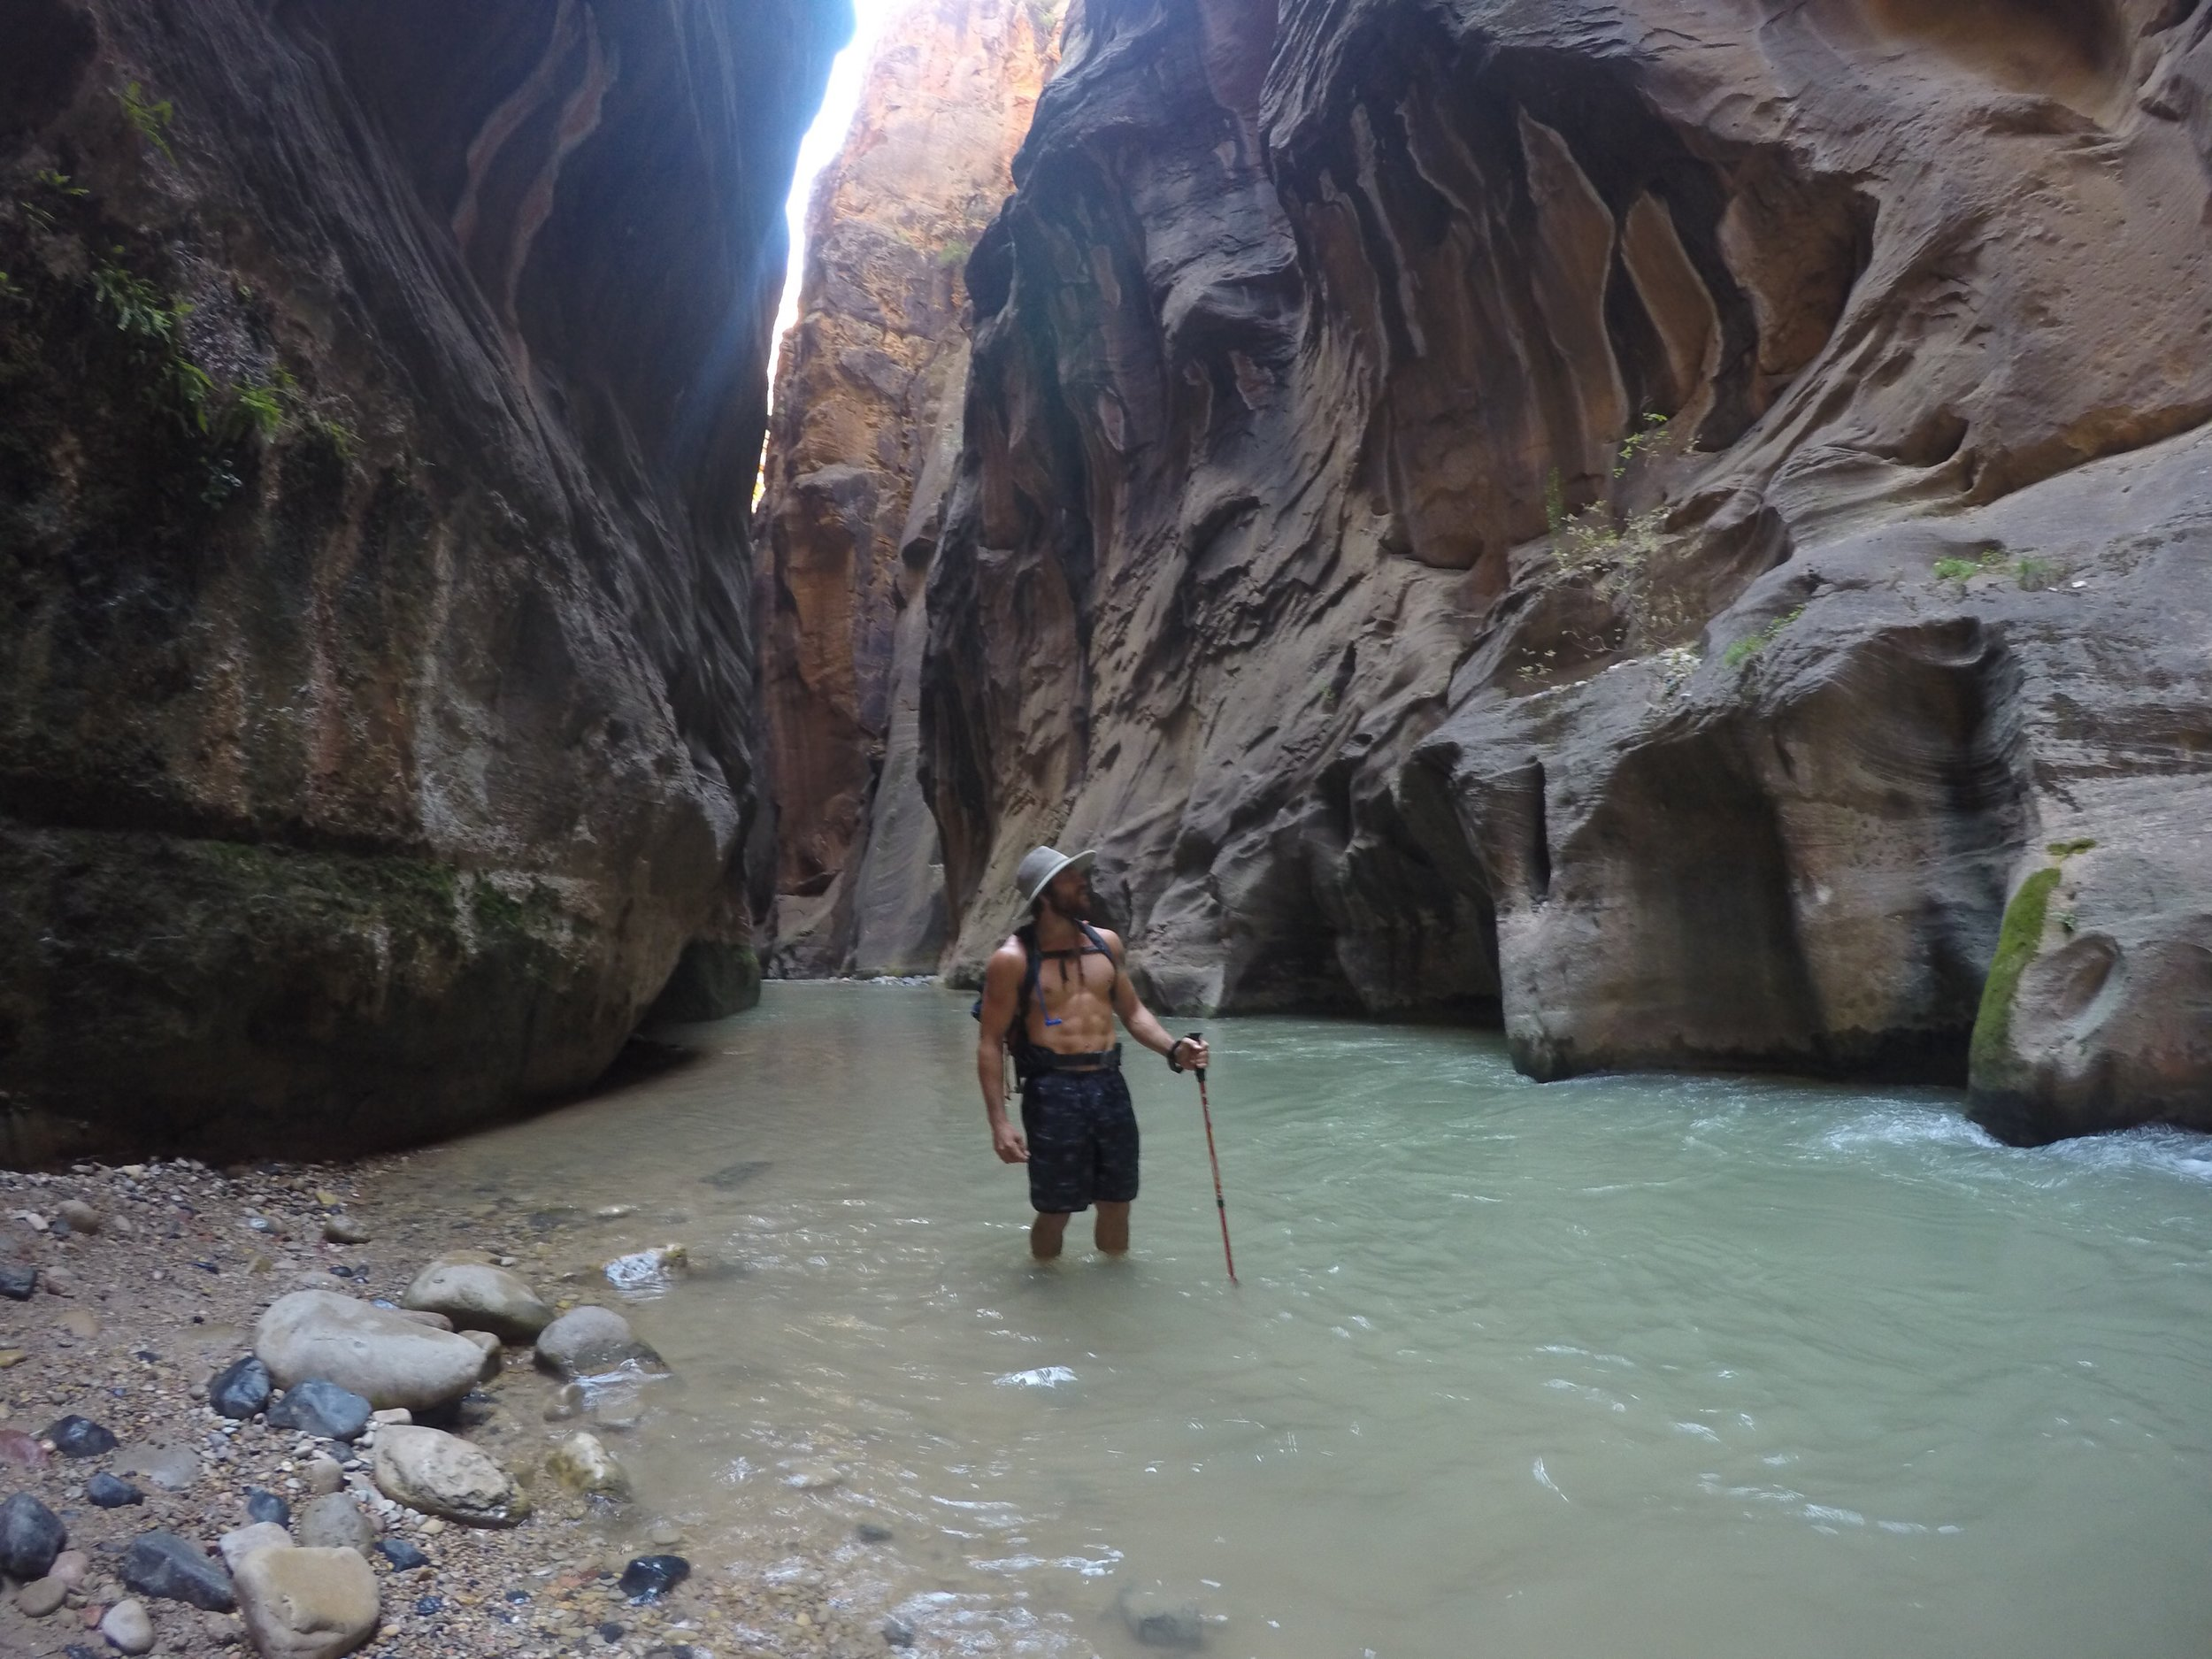 Aaron at The Narrows, Zion National Park, Utah - 3 Days*